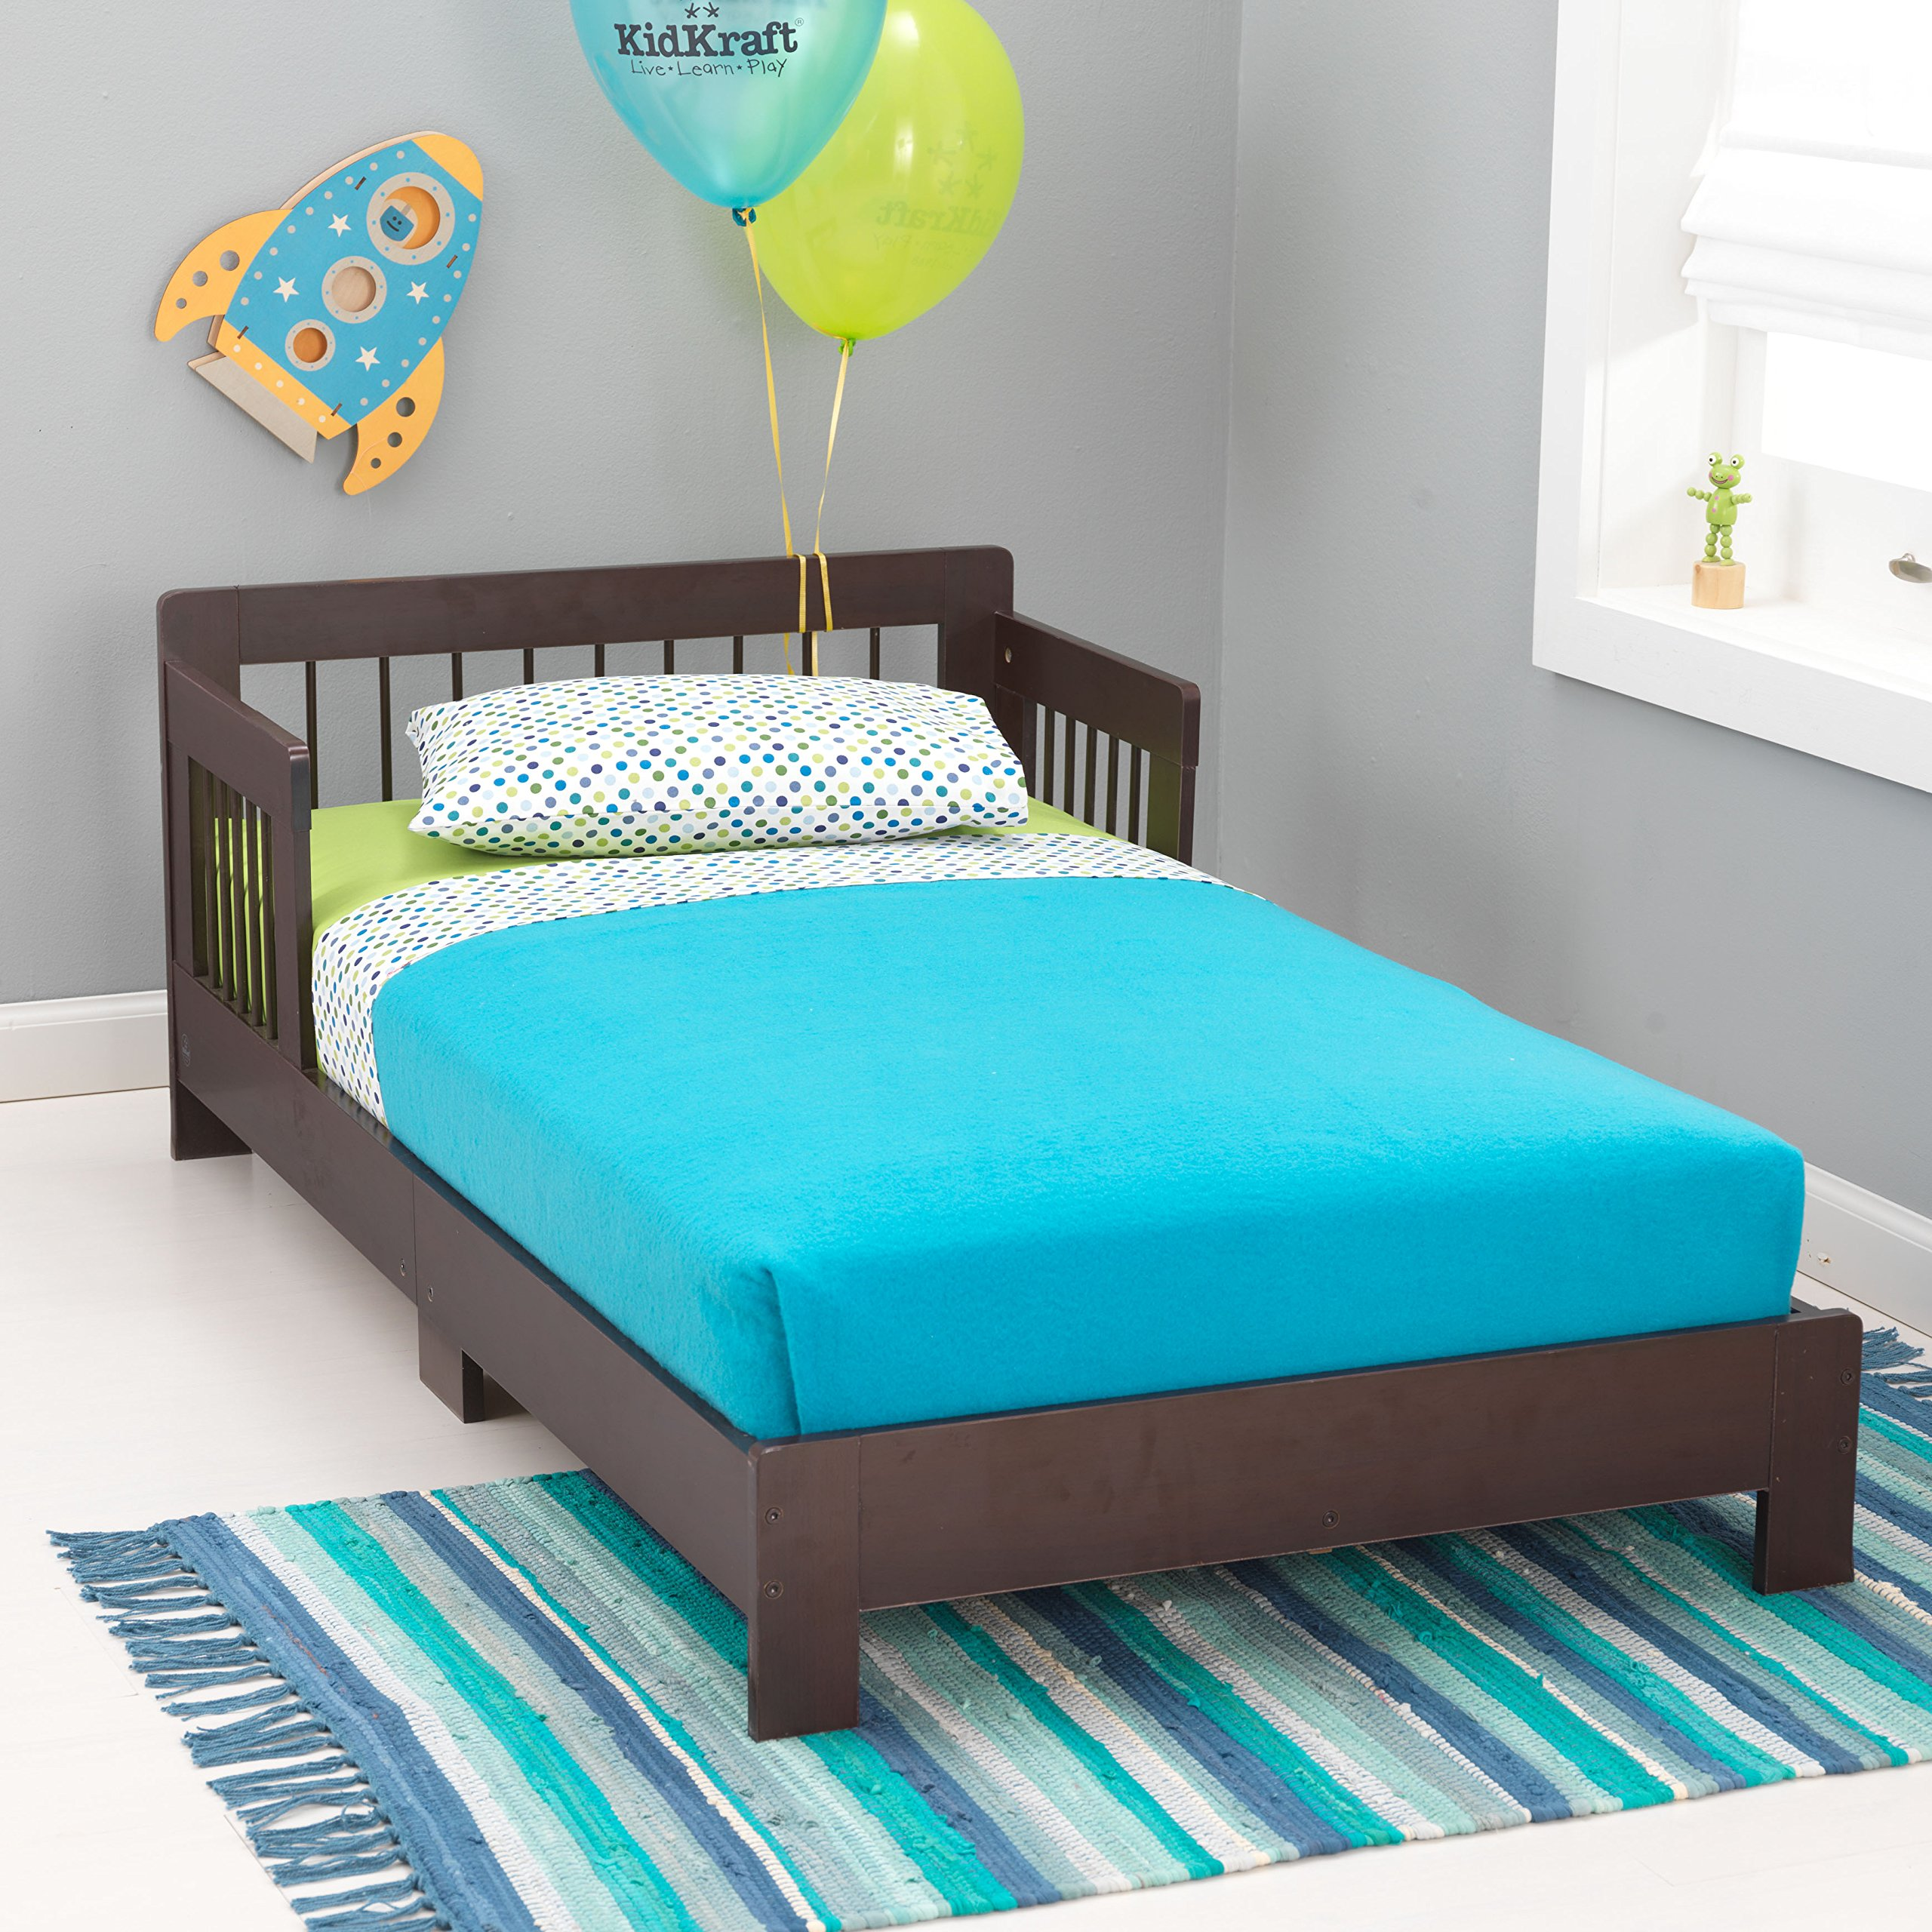 KidKraft Toddler Houston Bed, Espresso